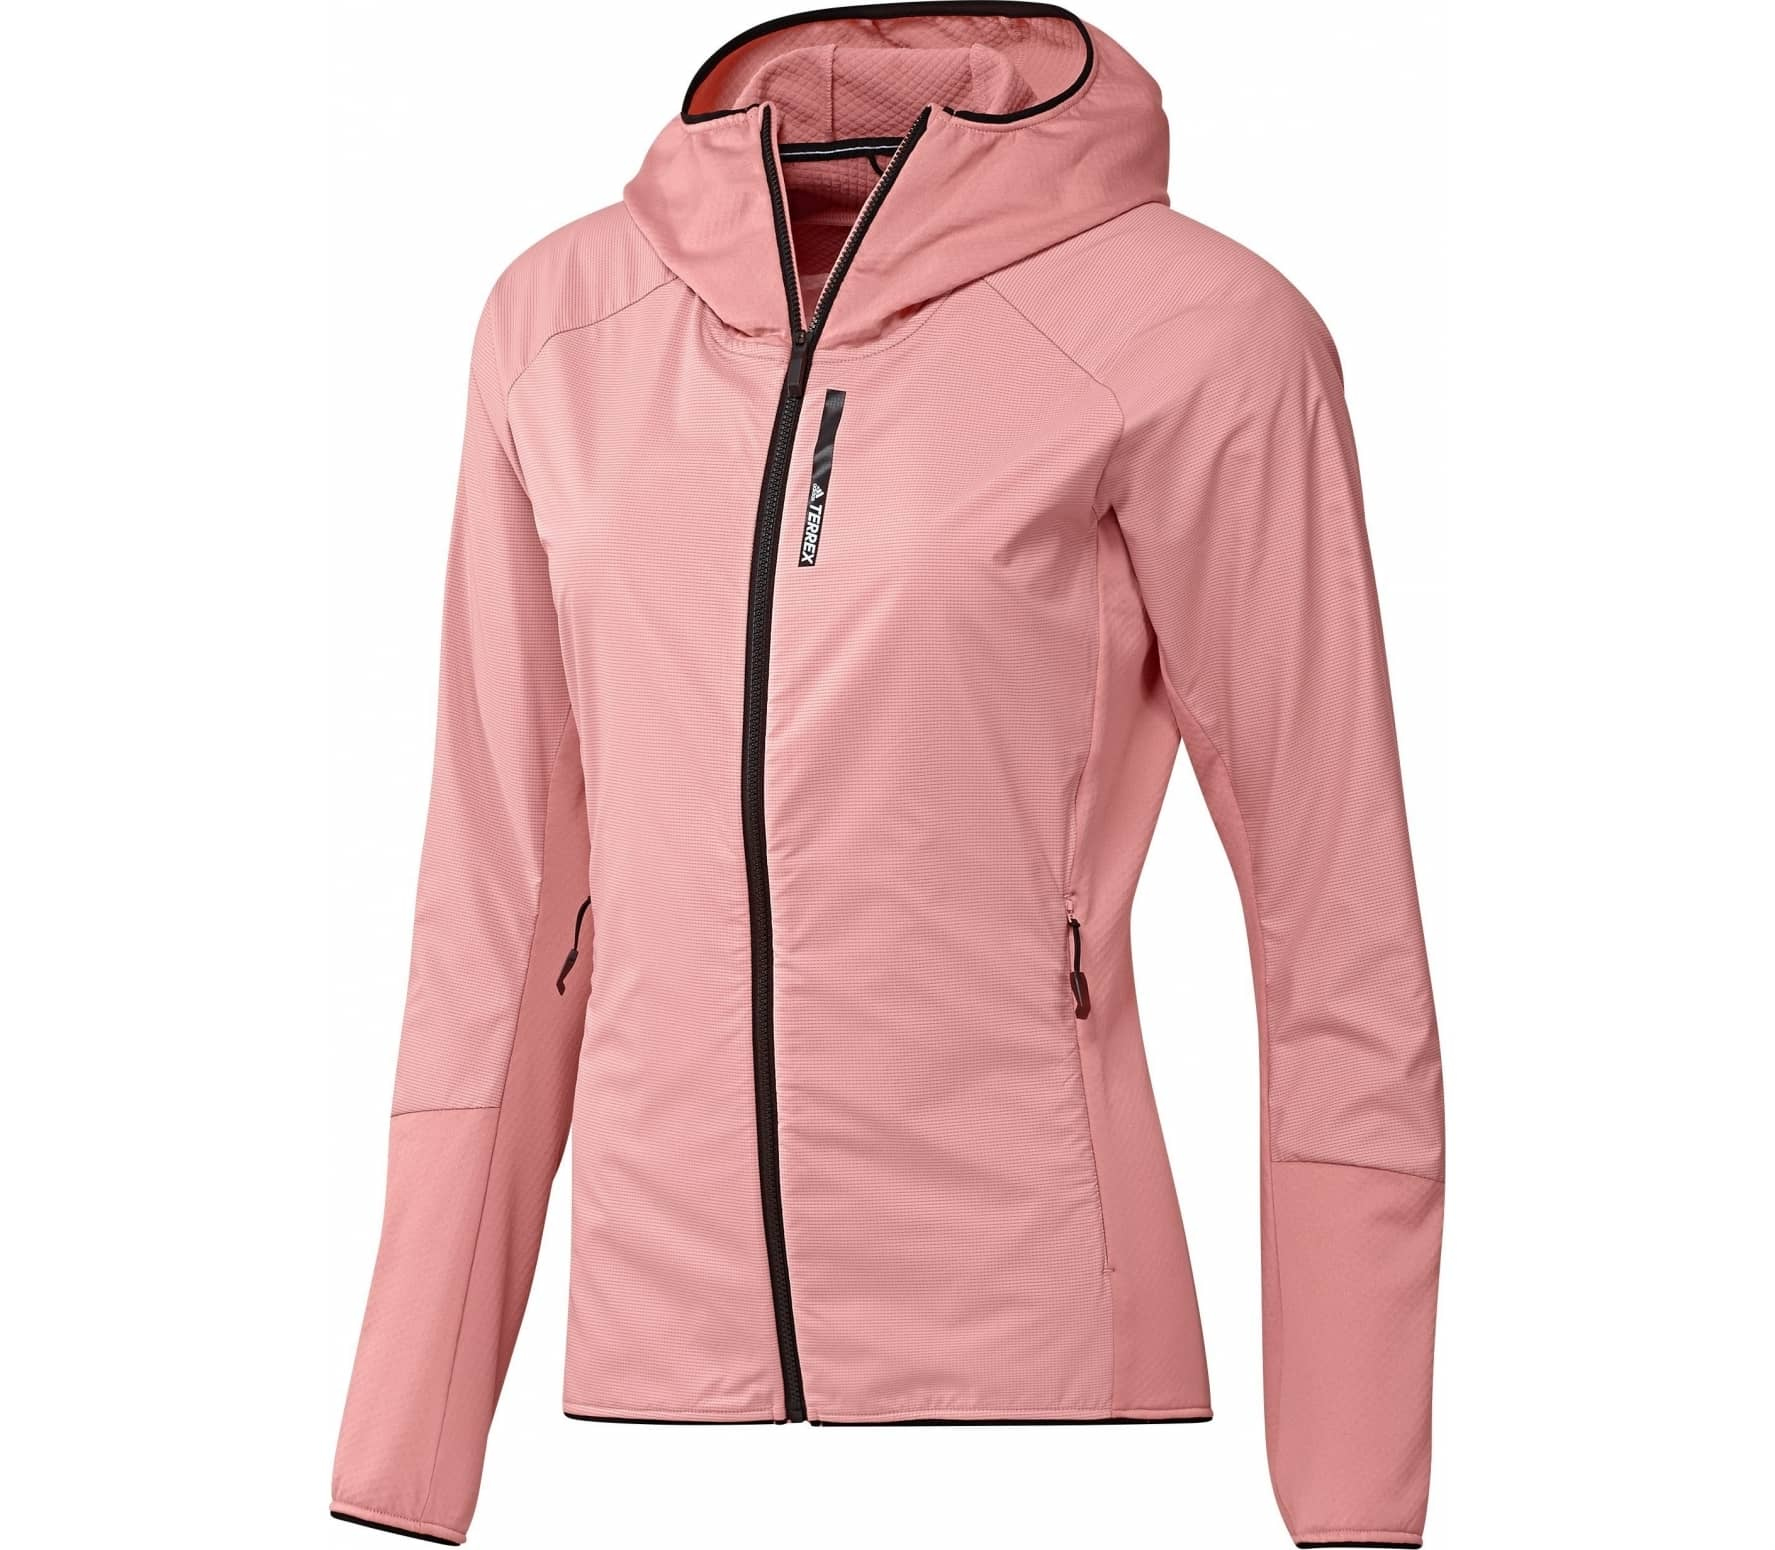 Fleecejacke rosa damen